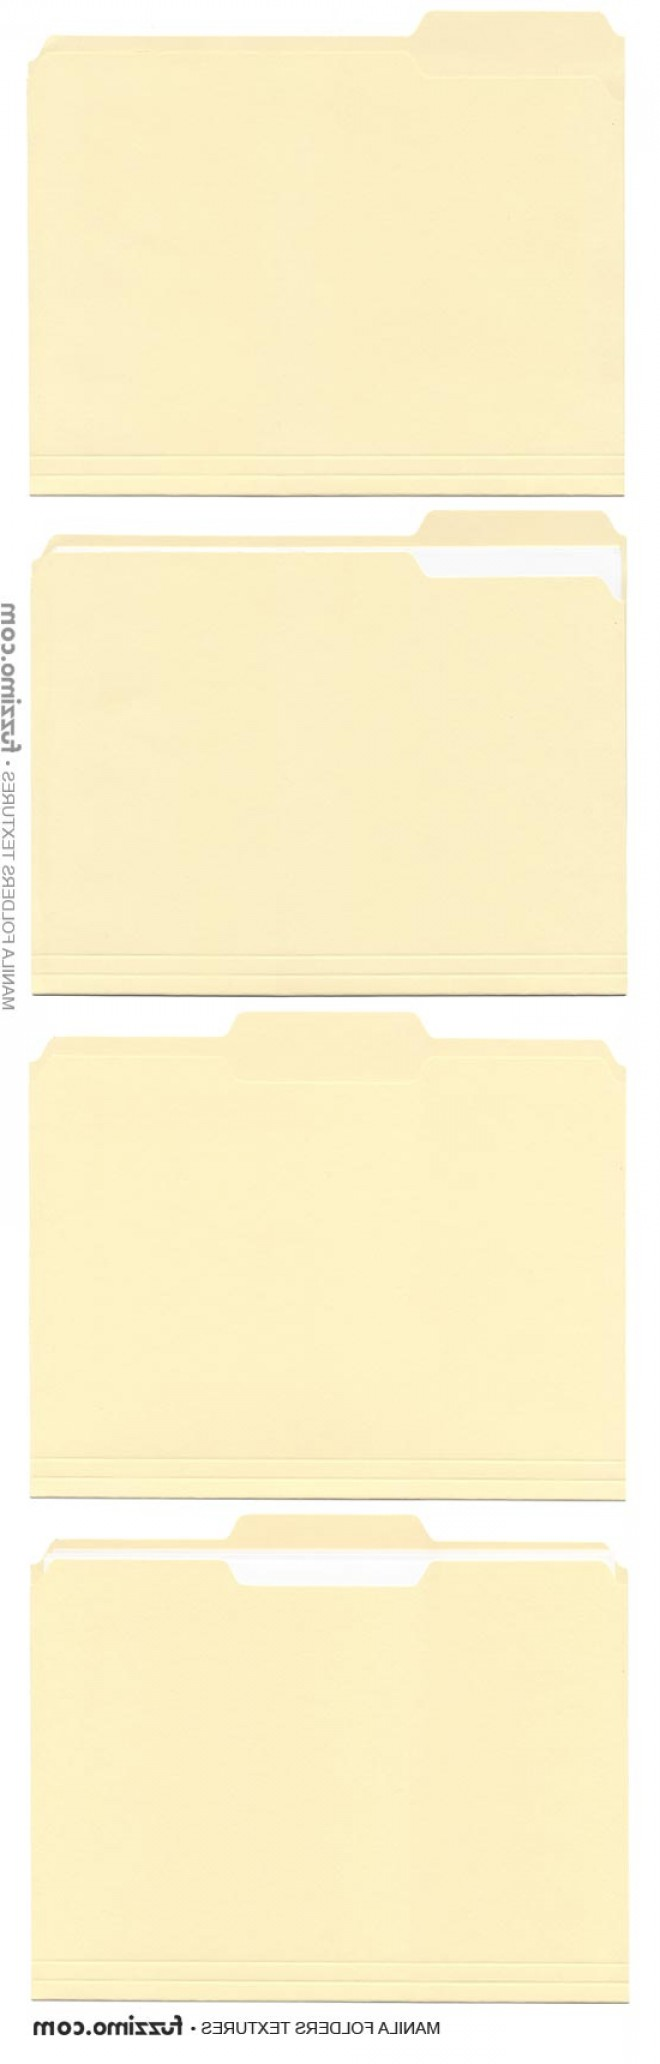 Folder Tab Vectors: Free Hi Res Manila File Folder Textures